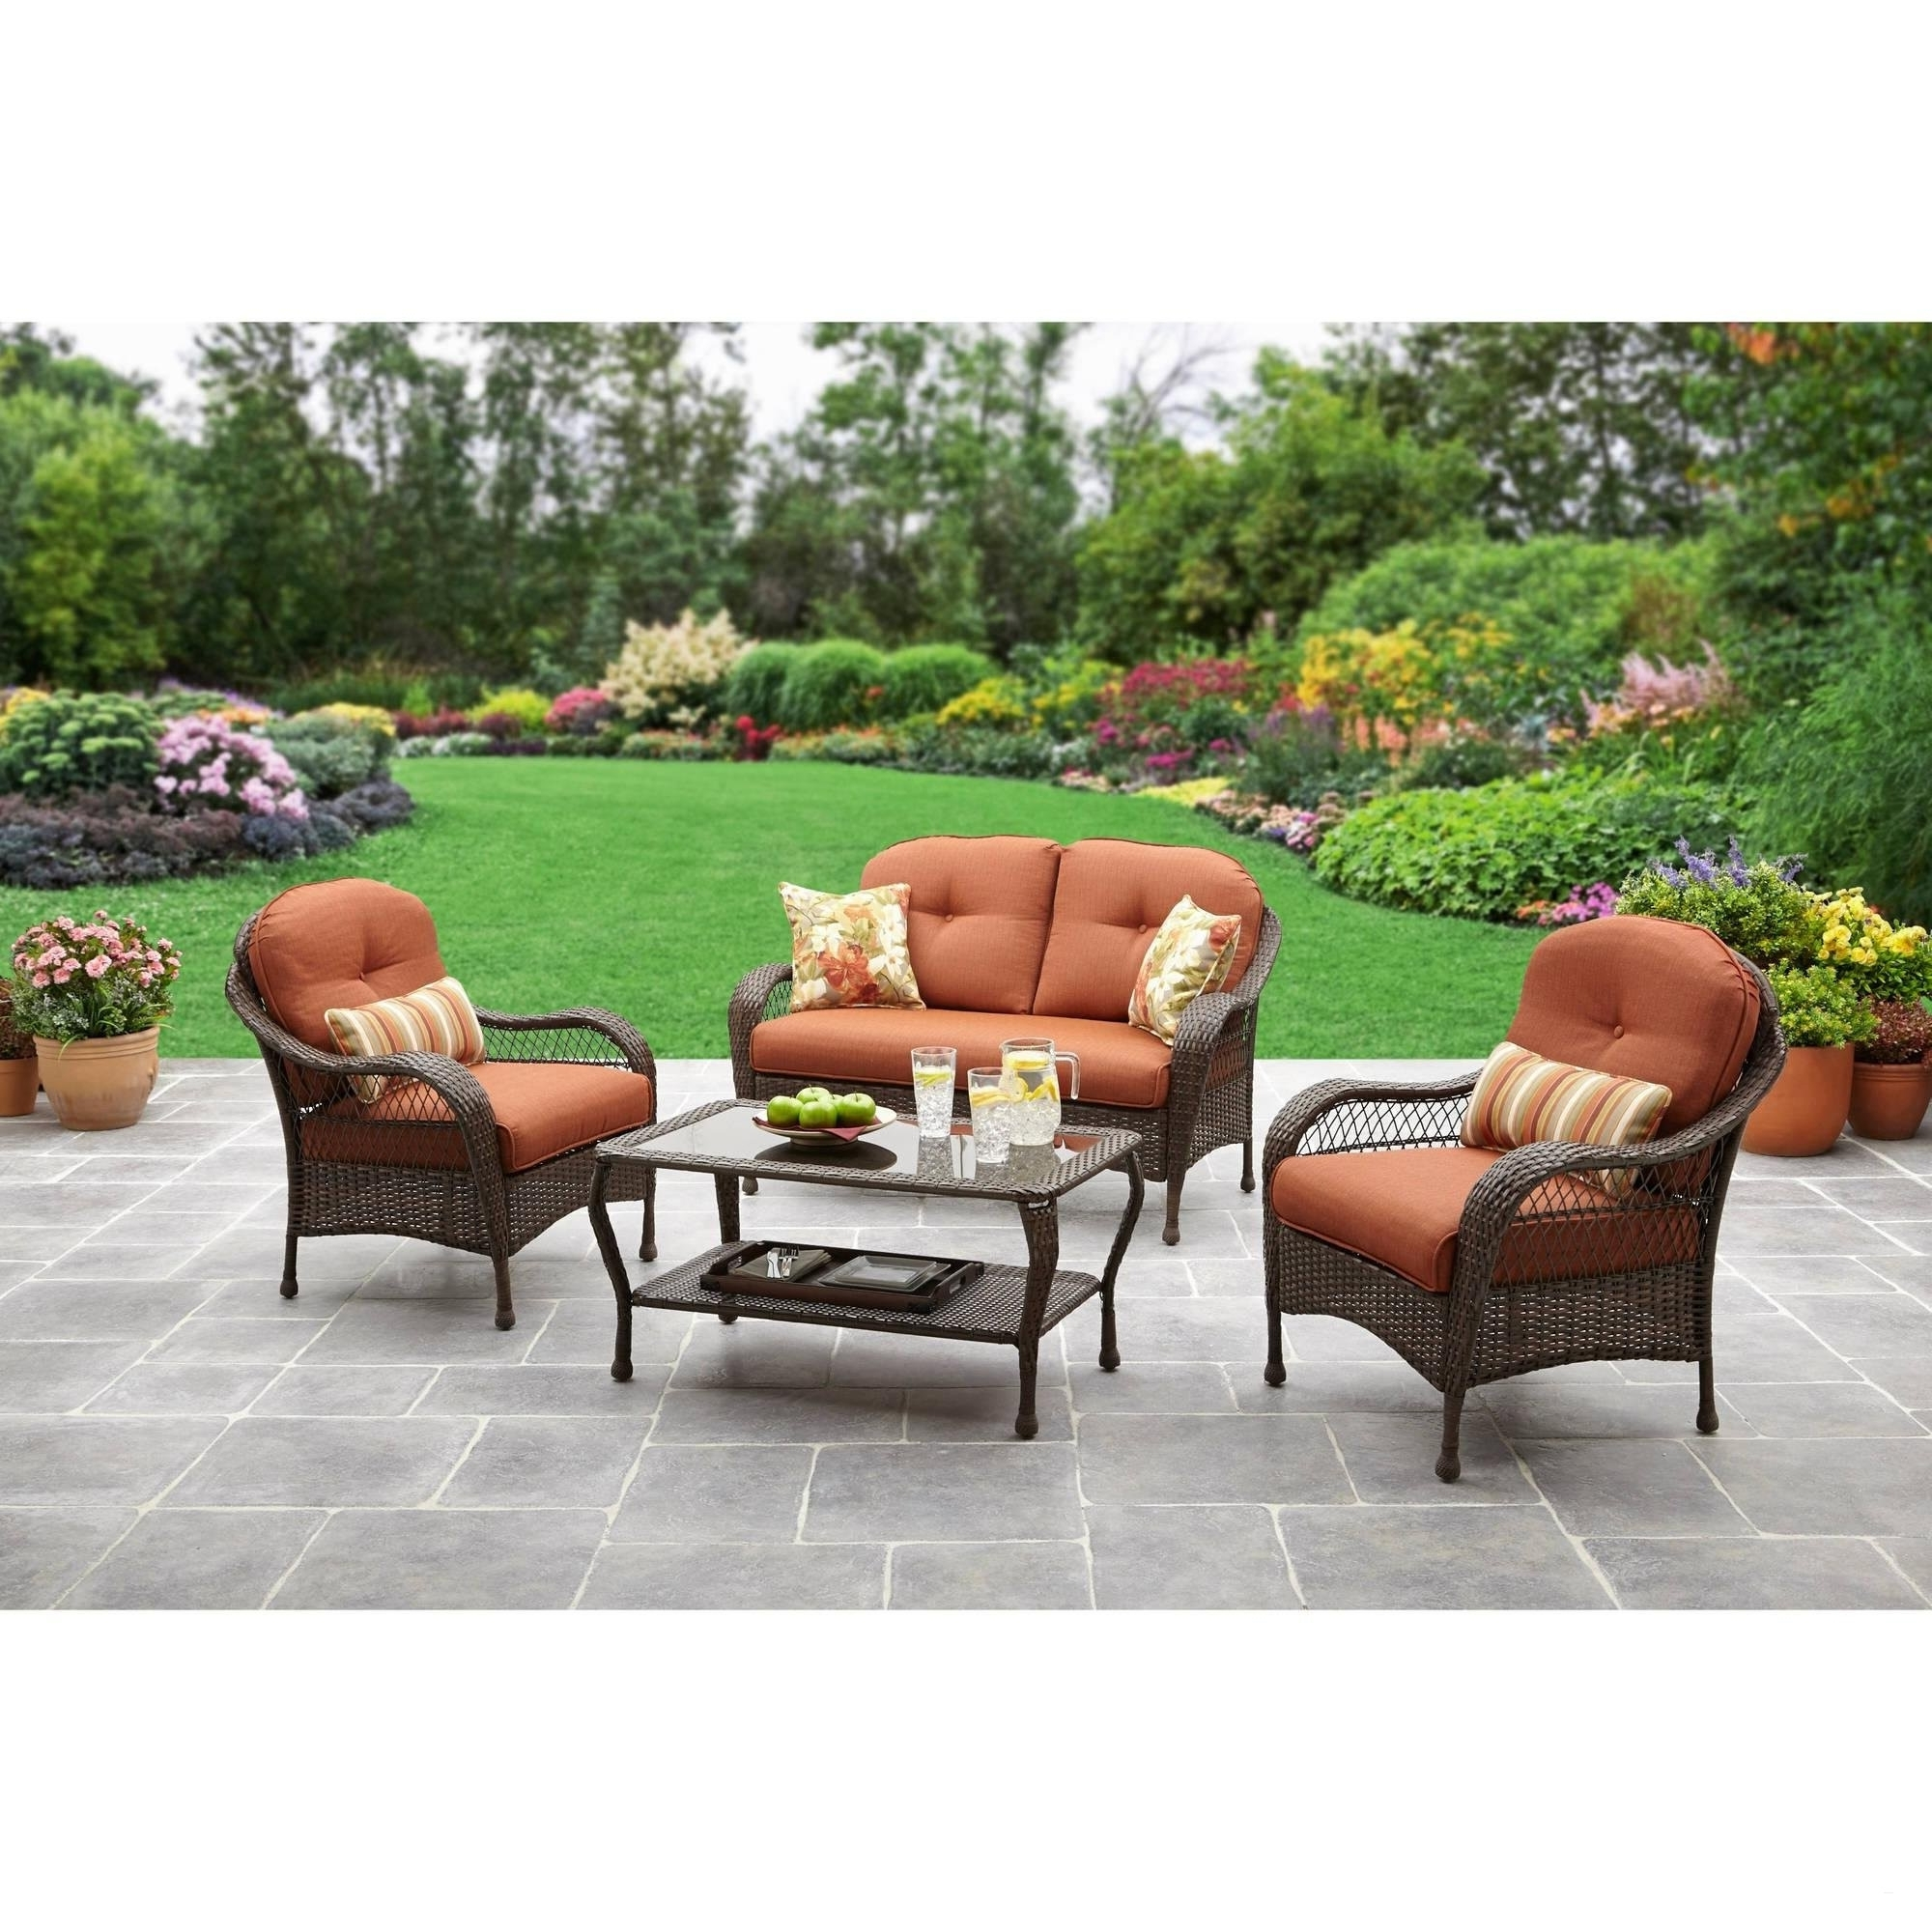 Amazon Patio Furniture Conversation Sets Within Current Home Depot Patio Furniture Amazon Outdoor Furniture Patio Furniture (View 6 of 20)